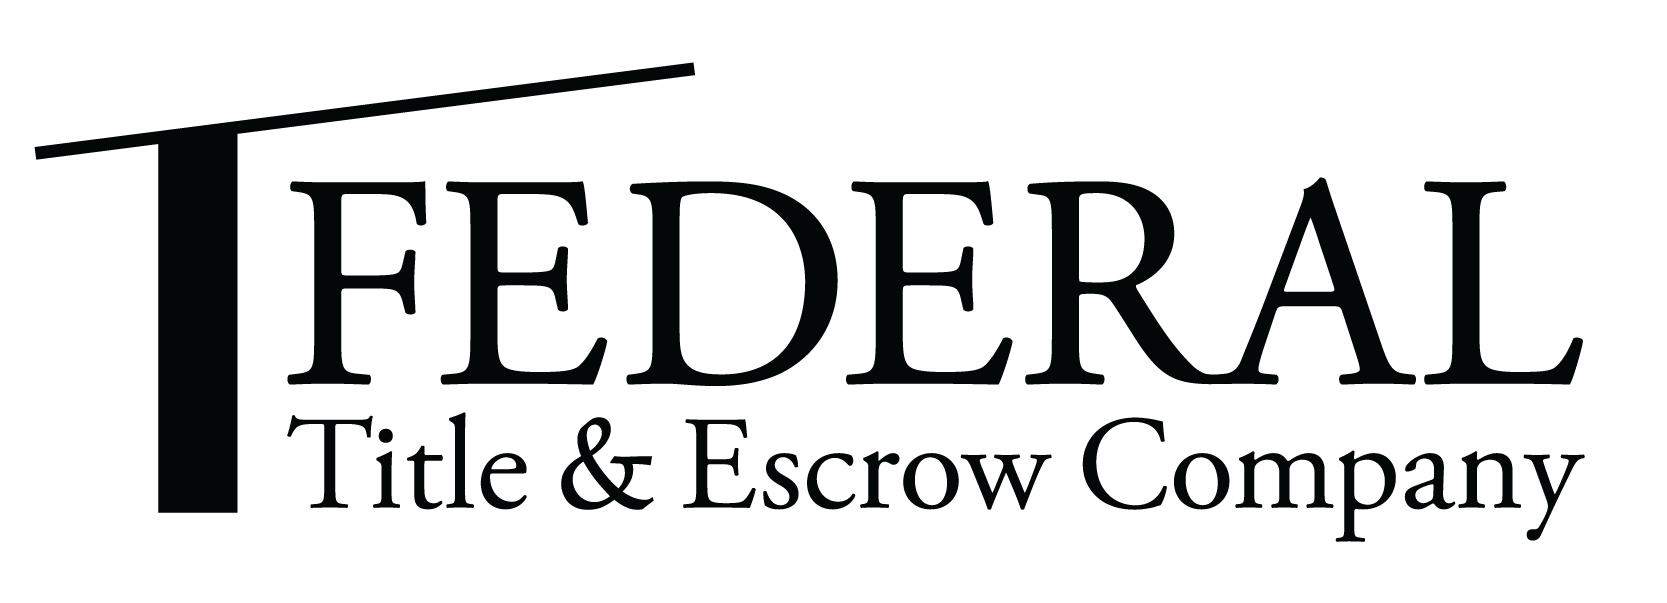 Federal Title & Escrow Co.